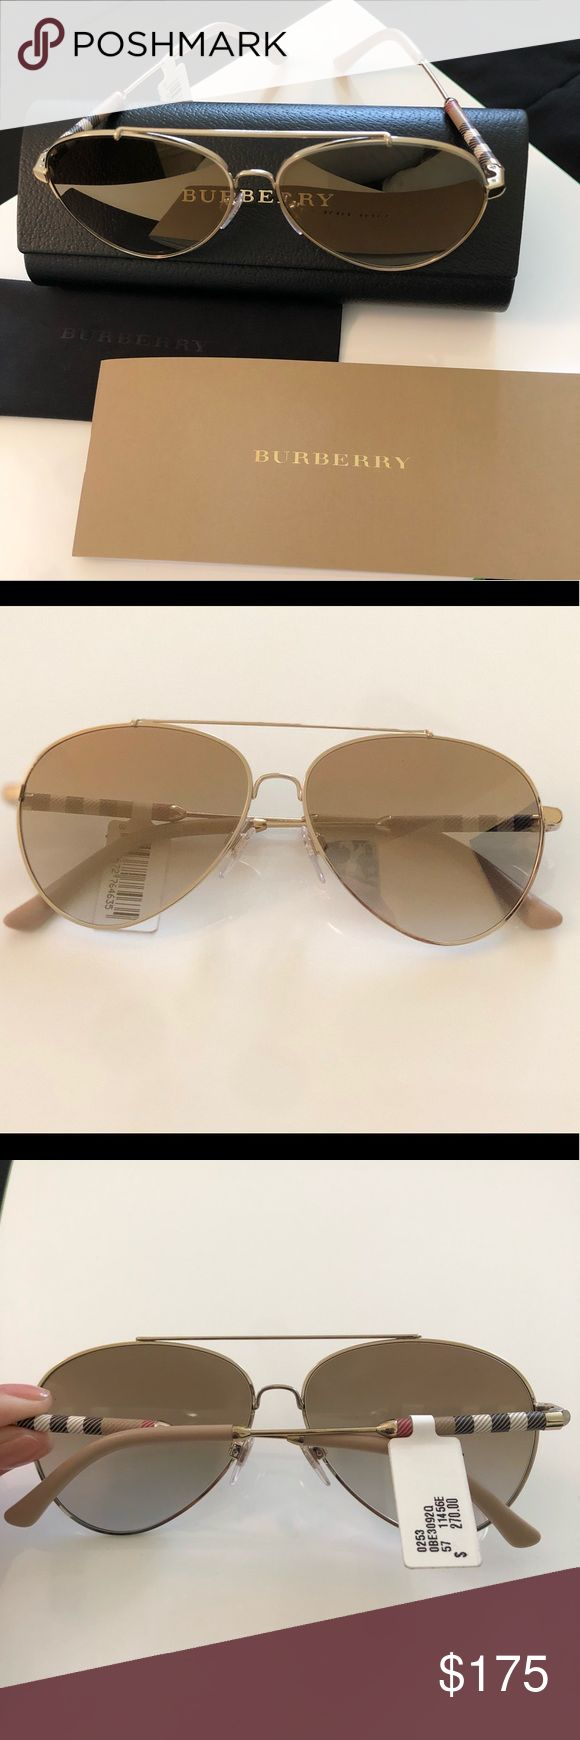 Burberry sunglasses Brand new with tags, burberry sunglasses original price $270 plus tax Burberry Accessories Sunglasses